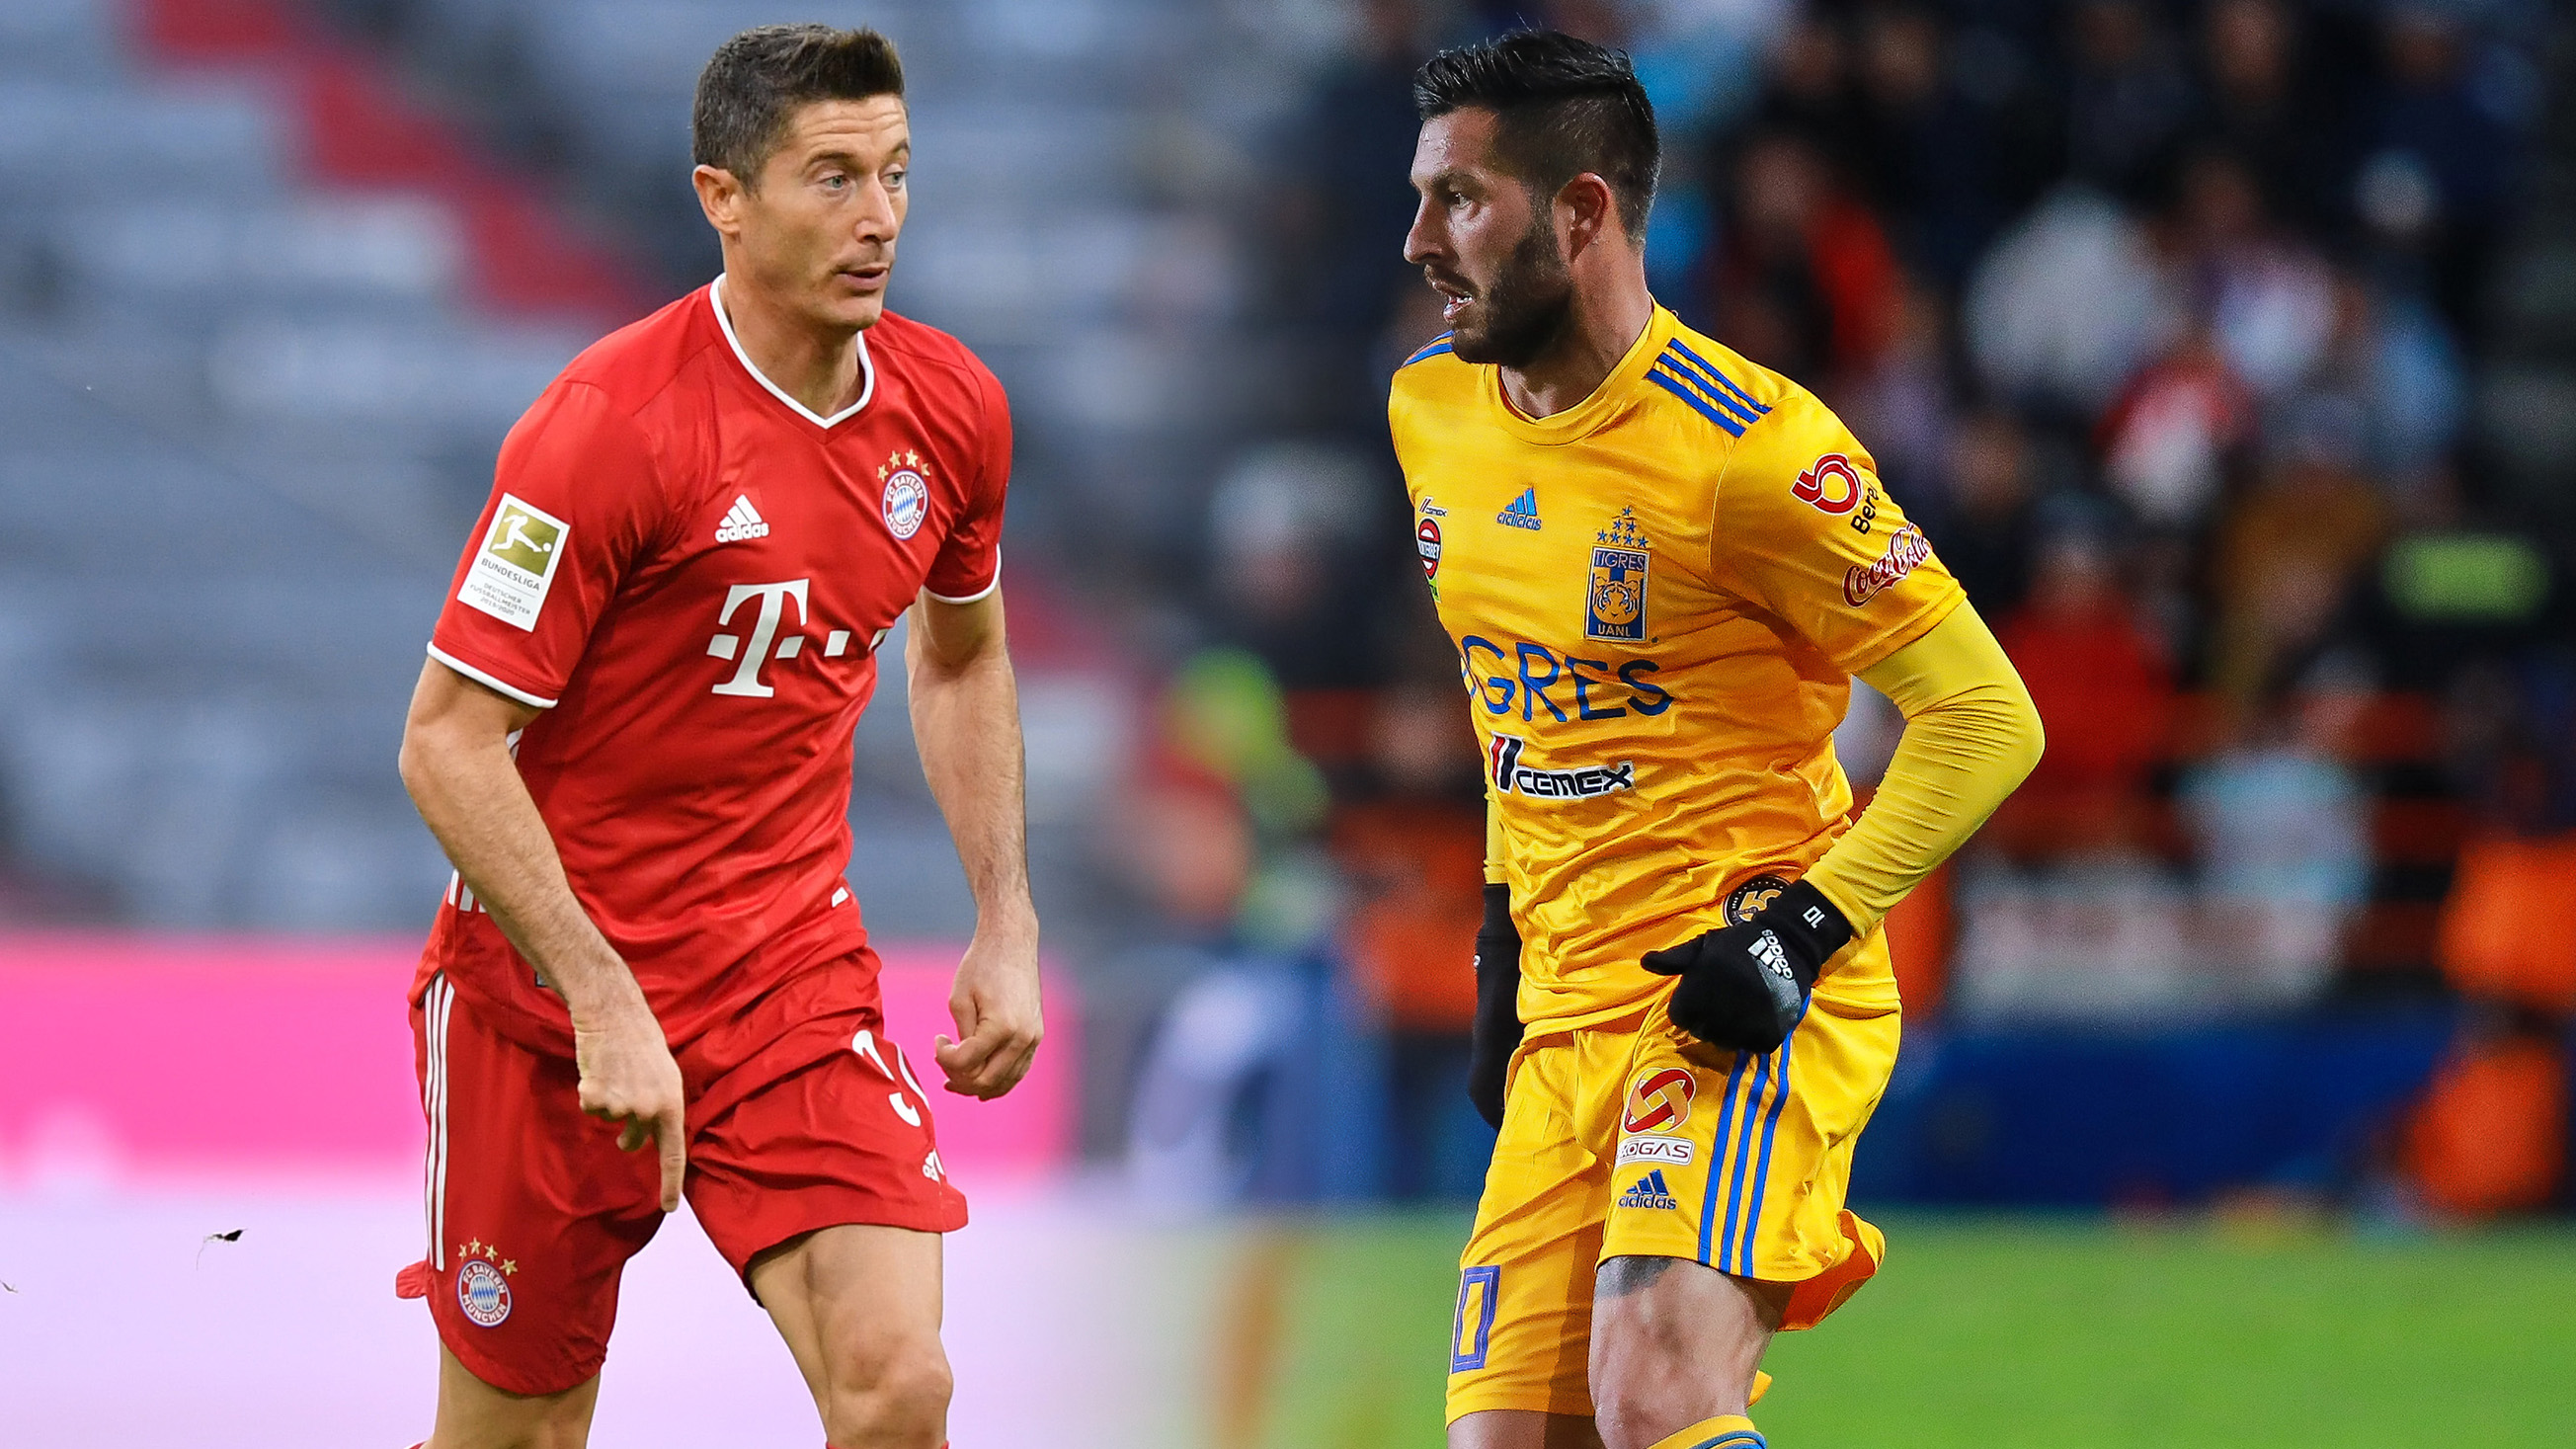 Tigres Makes First Ever Appearance In Fifa Club World Cup Final Facing Bayern Munich Fox Sports Presspass